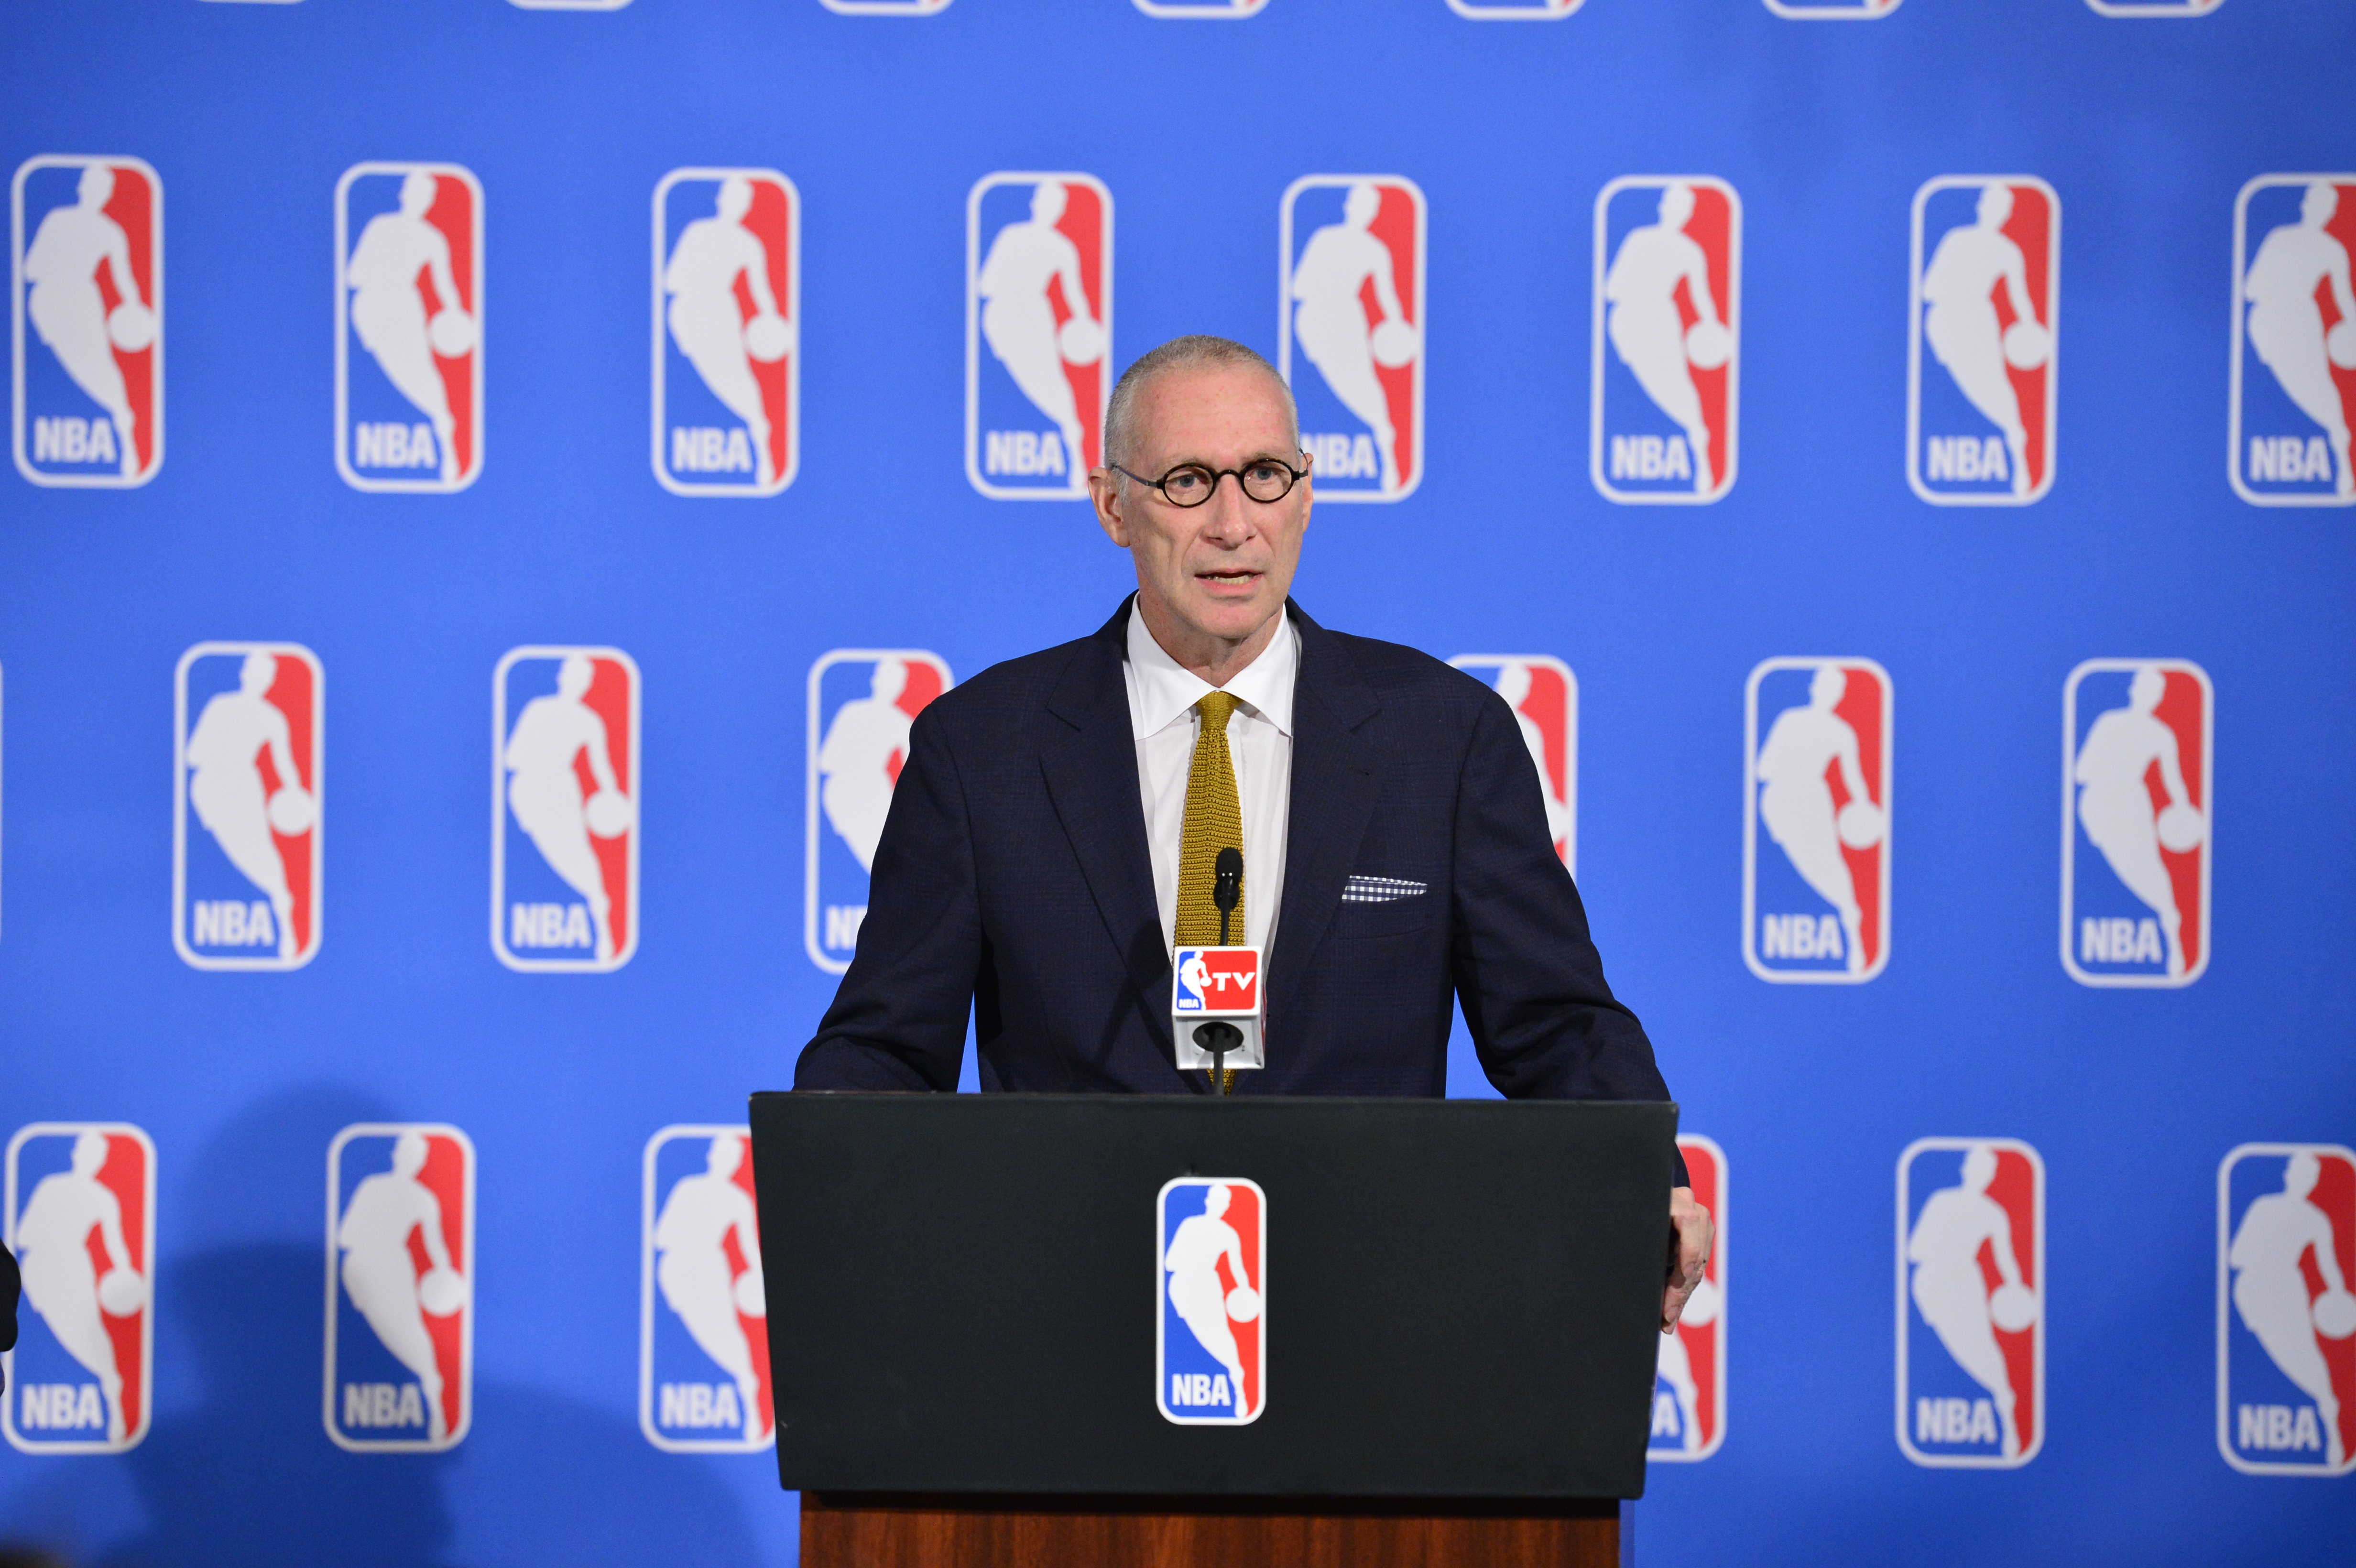 John Skipper, ESPN President and Disney Media Networks Co-Chairman and the NBA announce a new media partnerships on October 06, 2014 in New York City, New York.